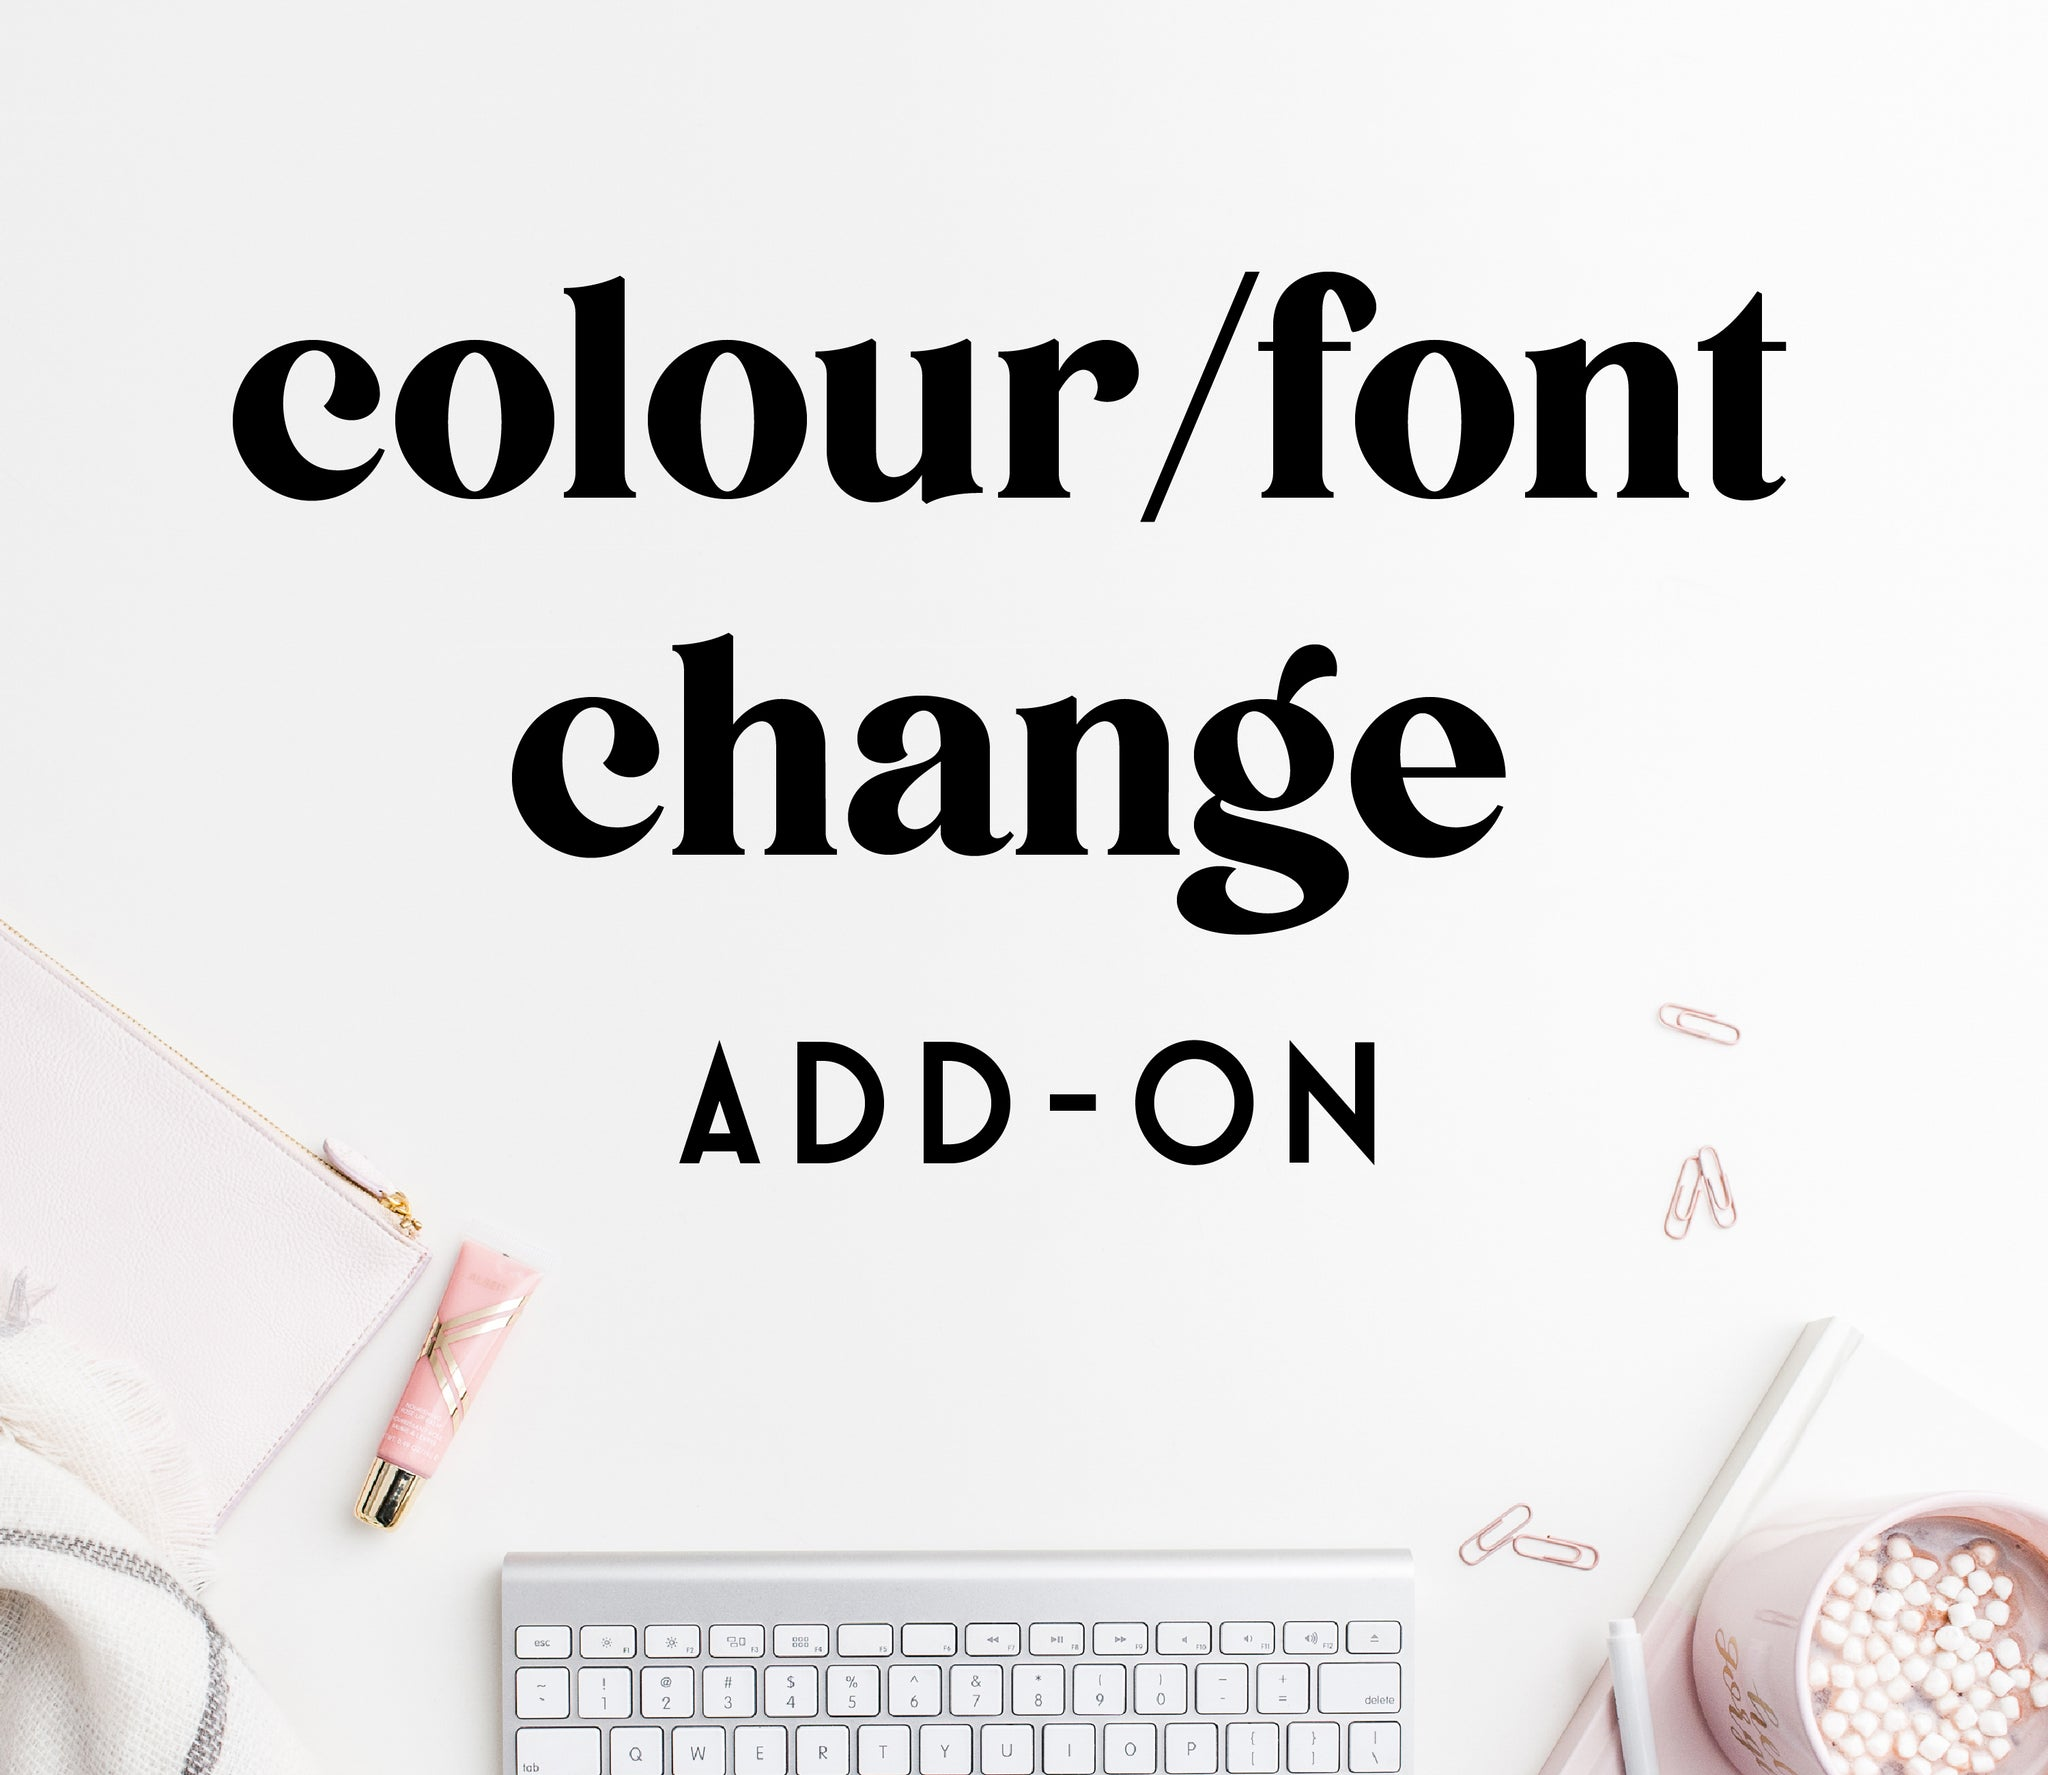 ADD-ON: colour / font change